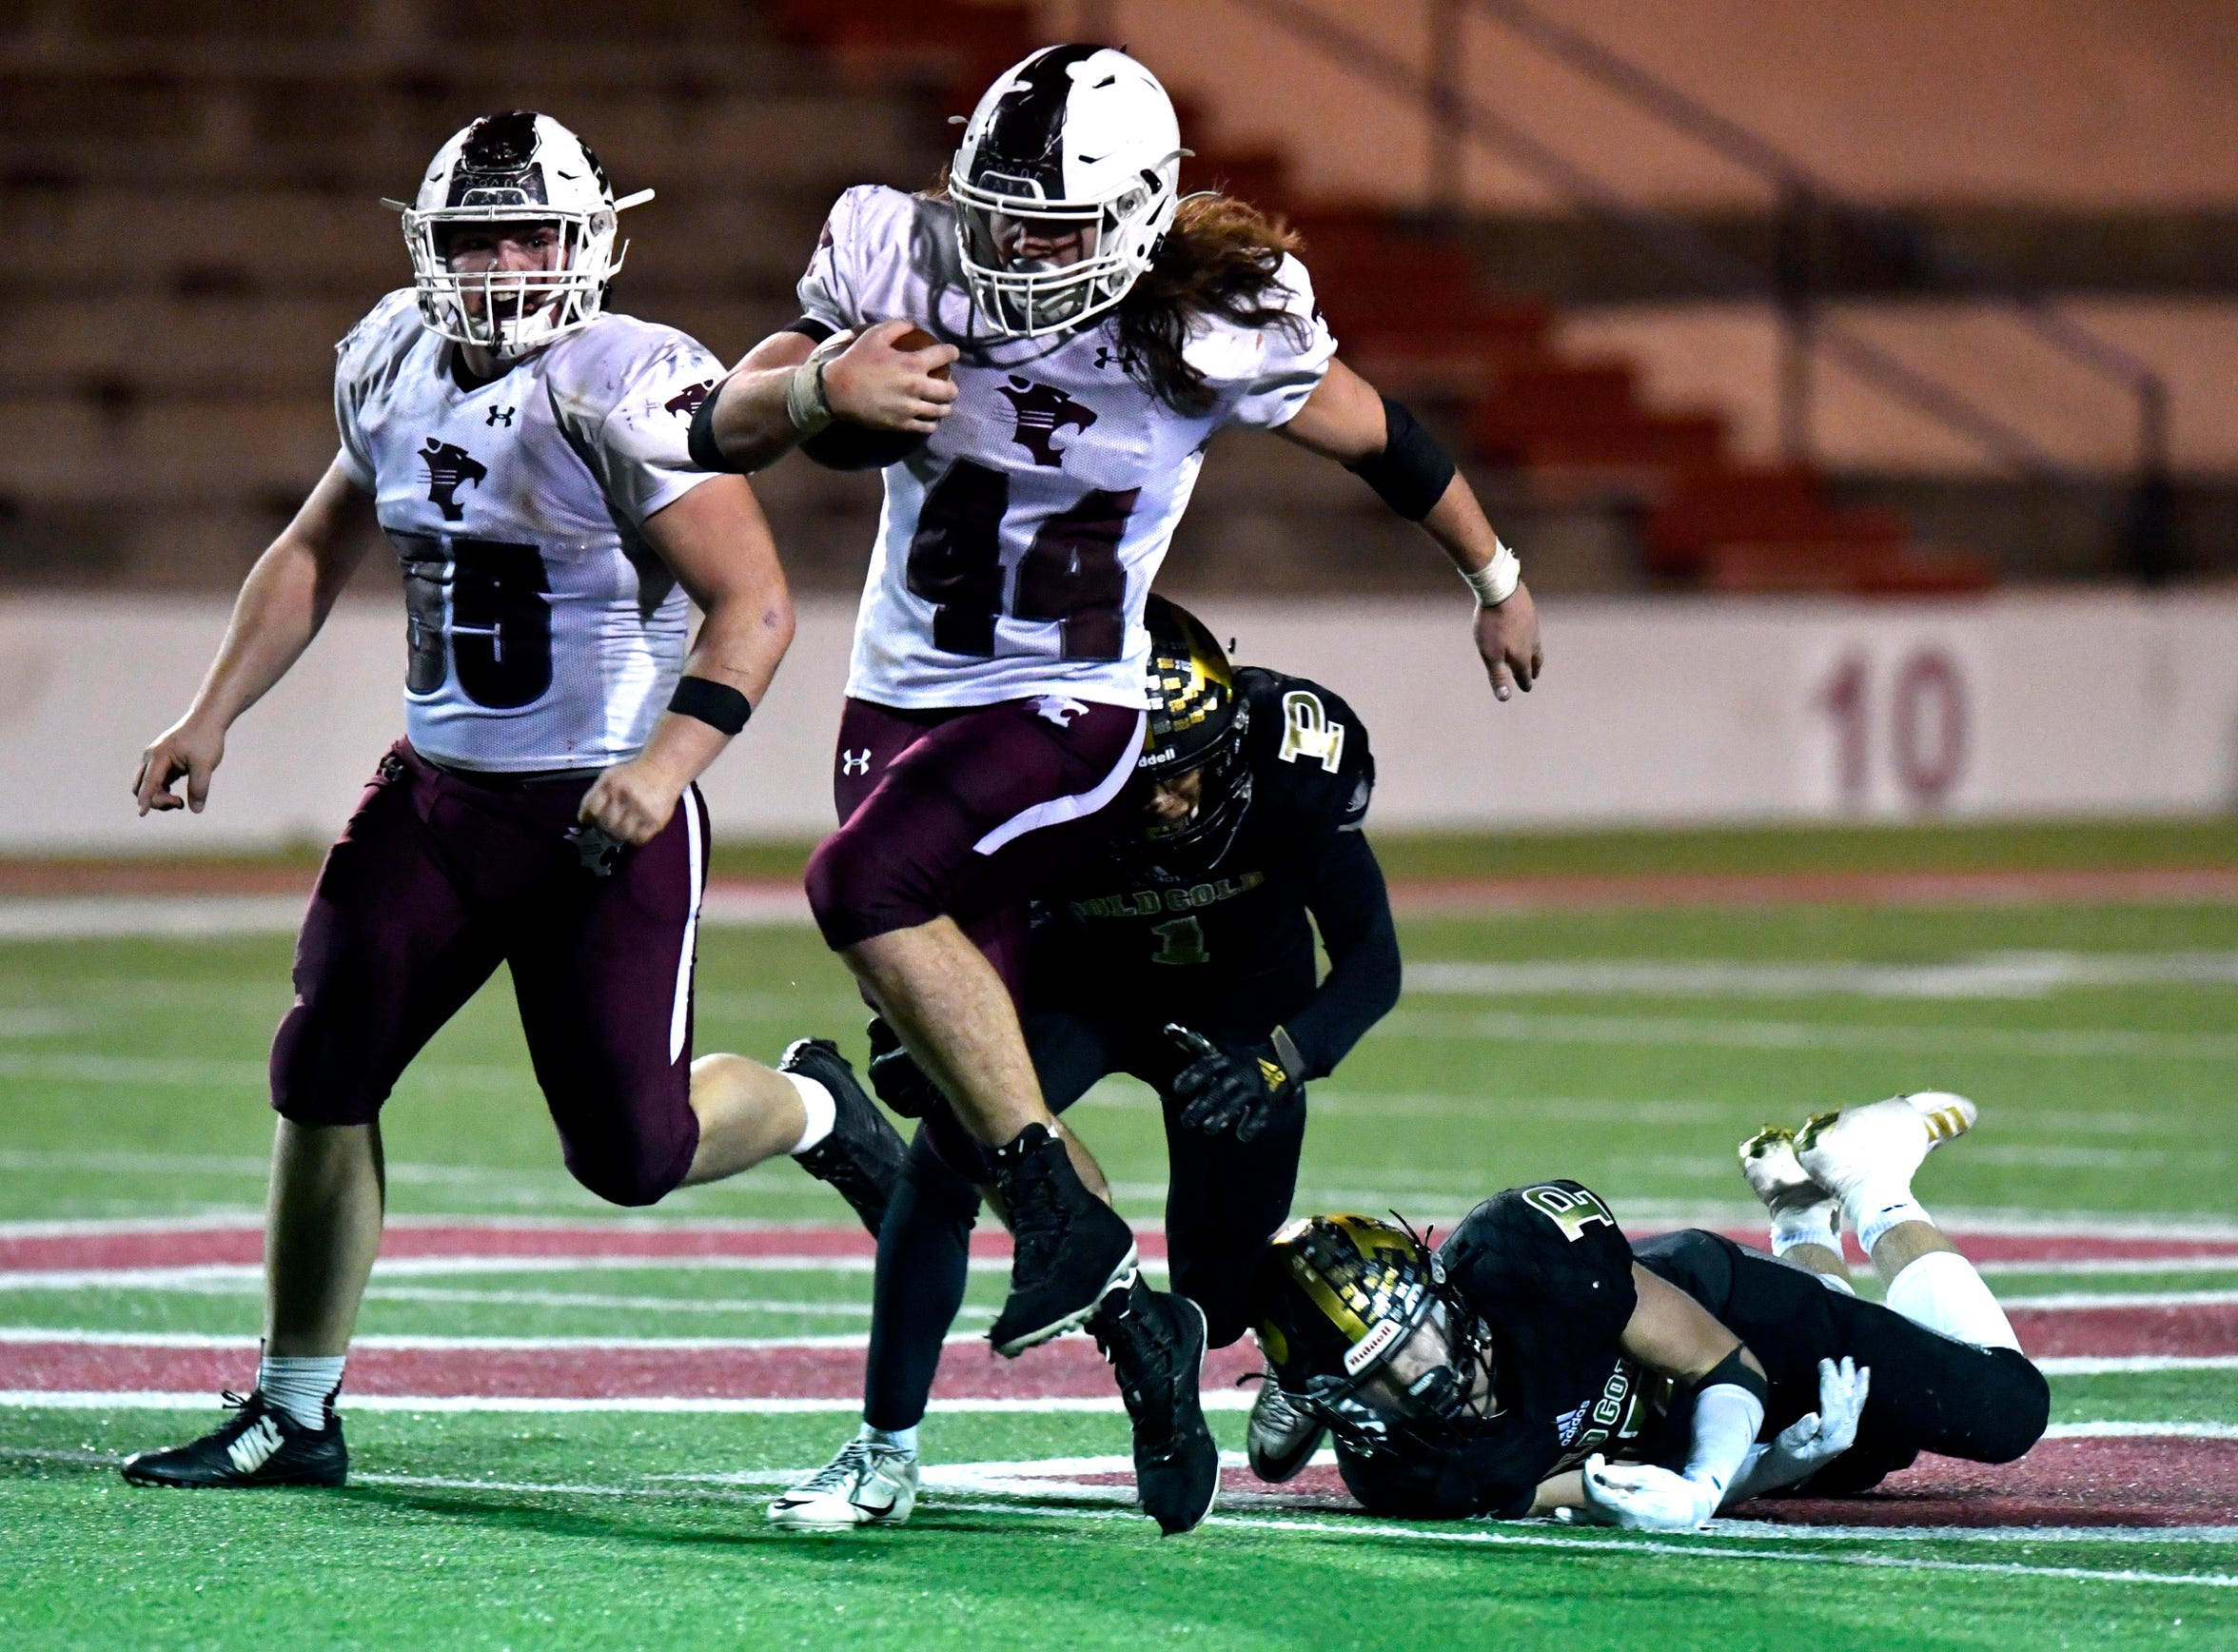 Hawley running back Colton Marshall runs for over 50 yards for a touchdown after returning to the game from an injury during the Region I-2A Division I final between the Bearcats and the Post Antelopes on Dec. 6. Post won the game 52-42.